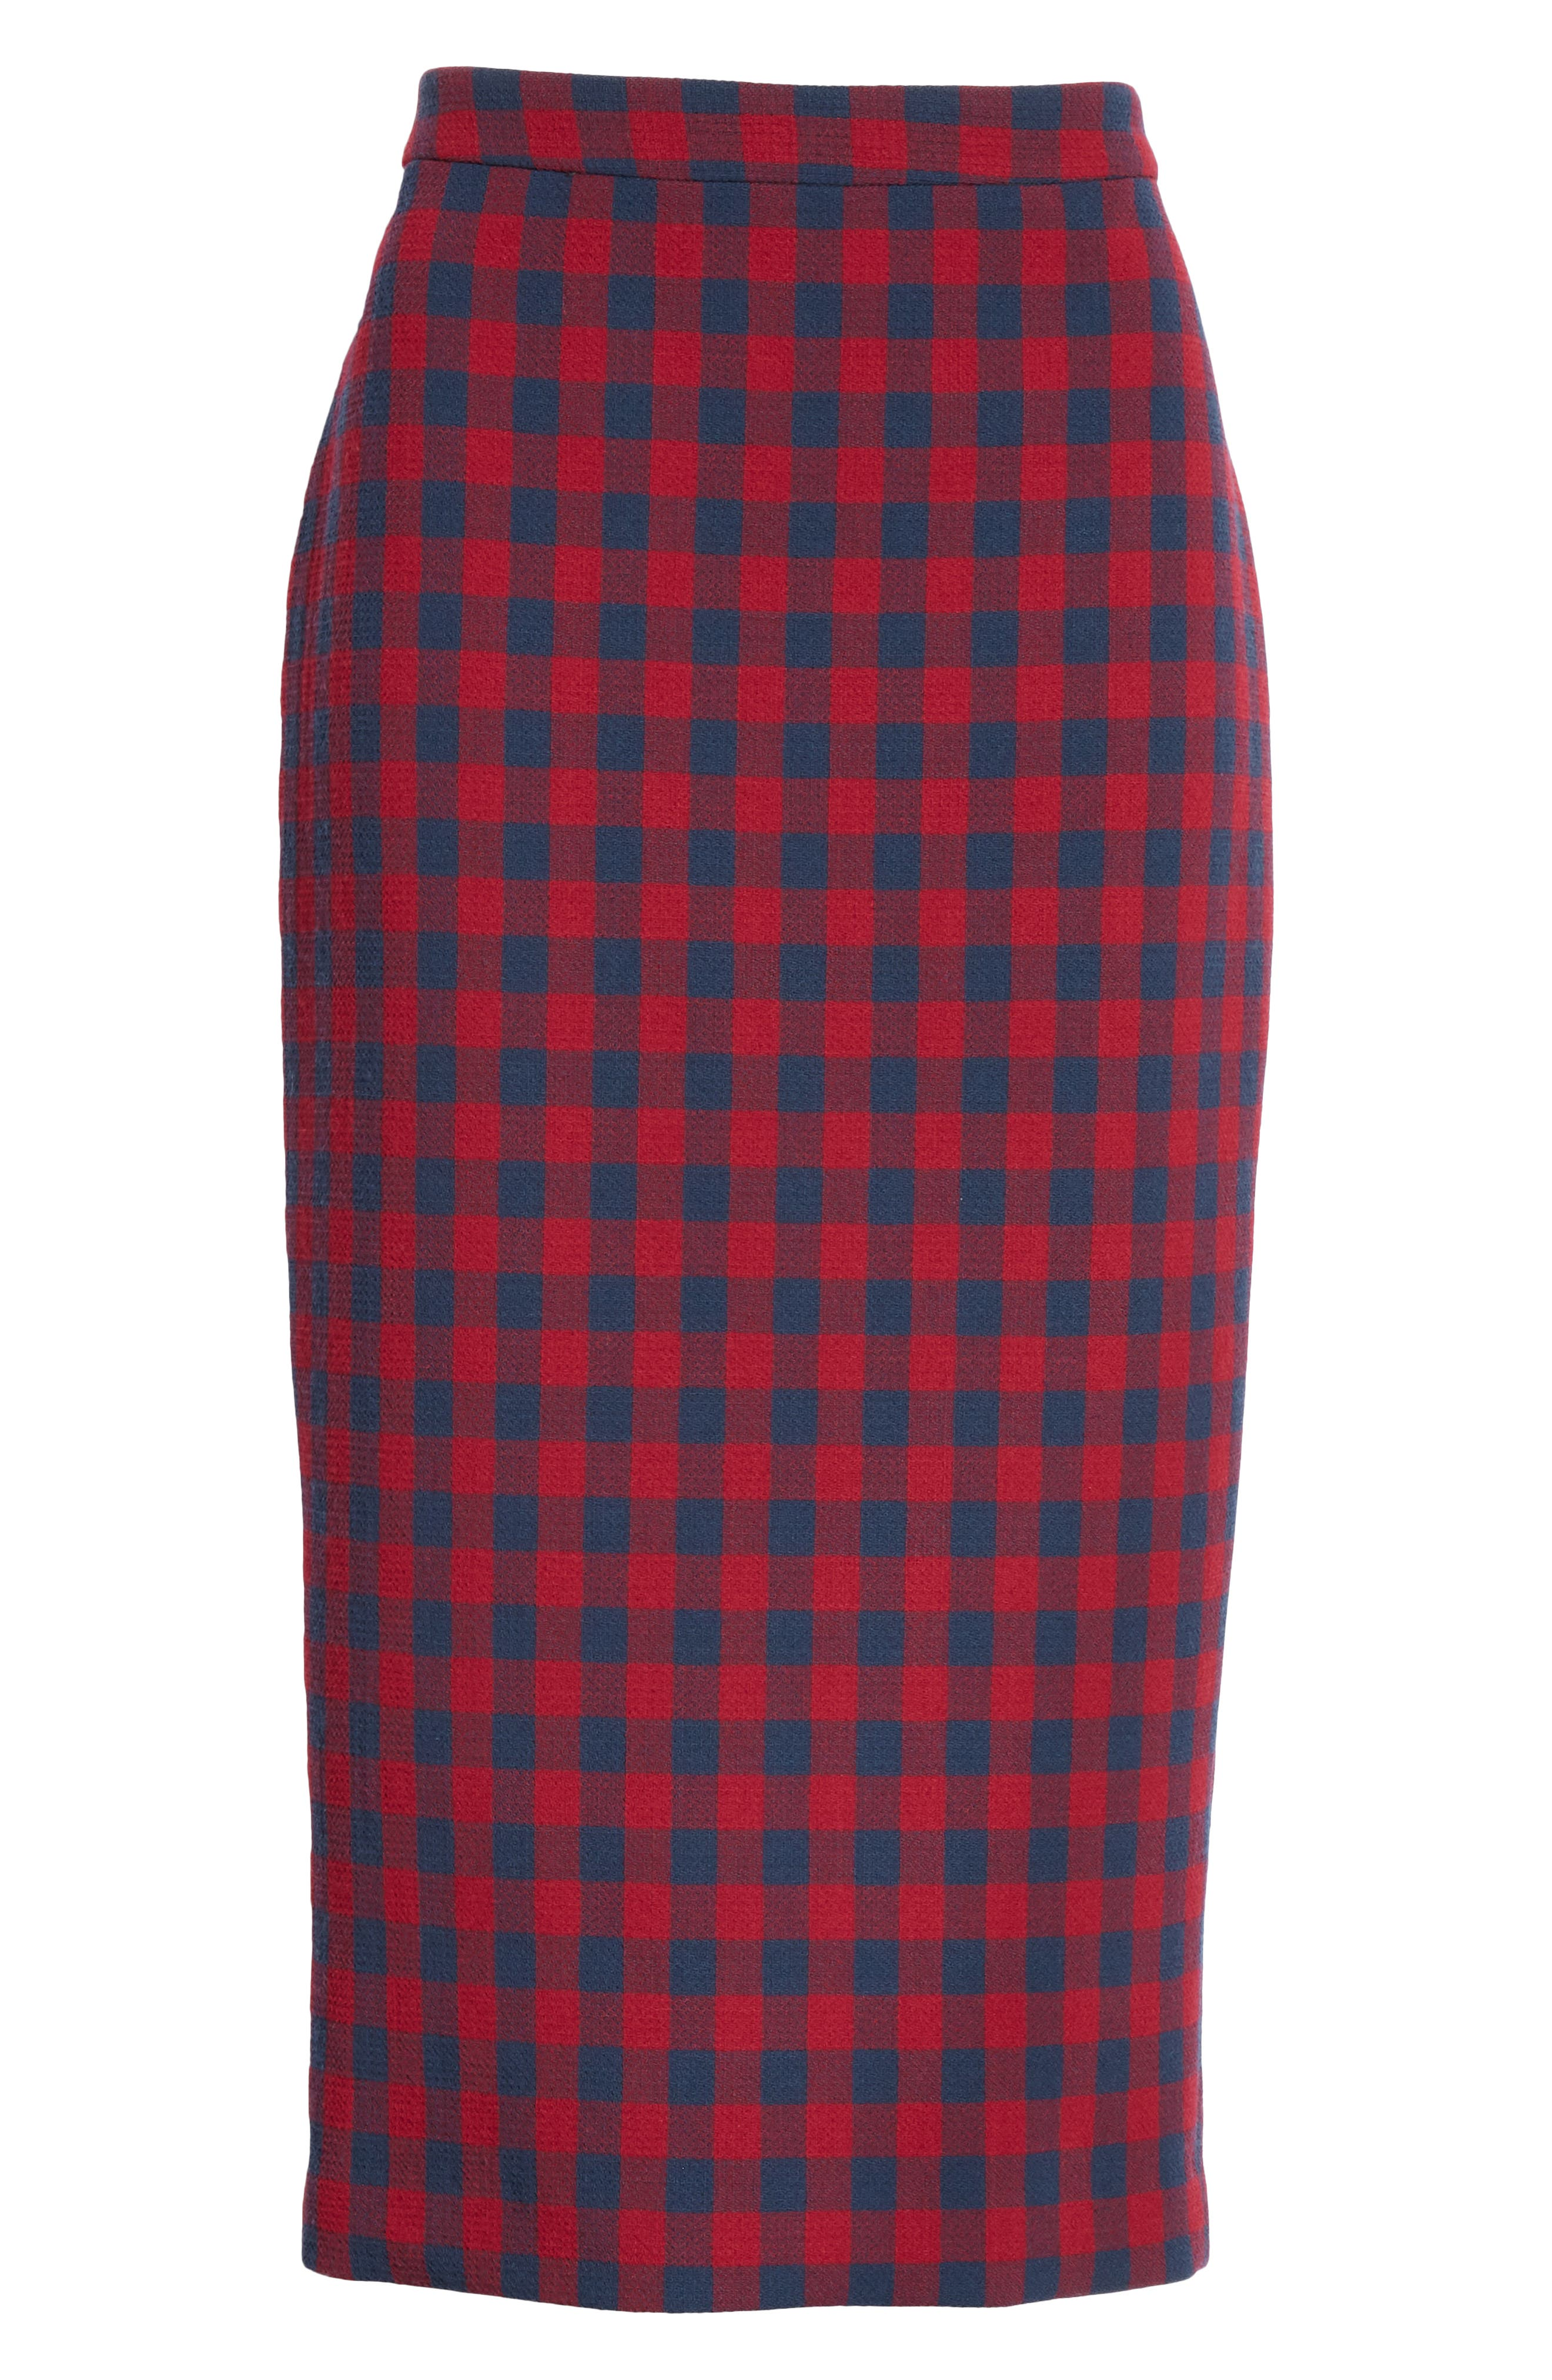 Thea Plaid Wool Pencil Skirt,                             Alternate thumbnail 6, color,                             BERRY/ NAVY